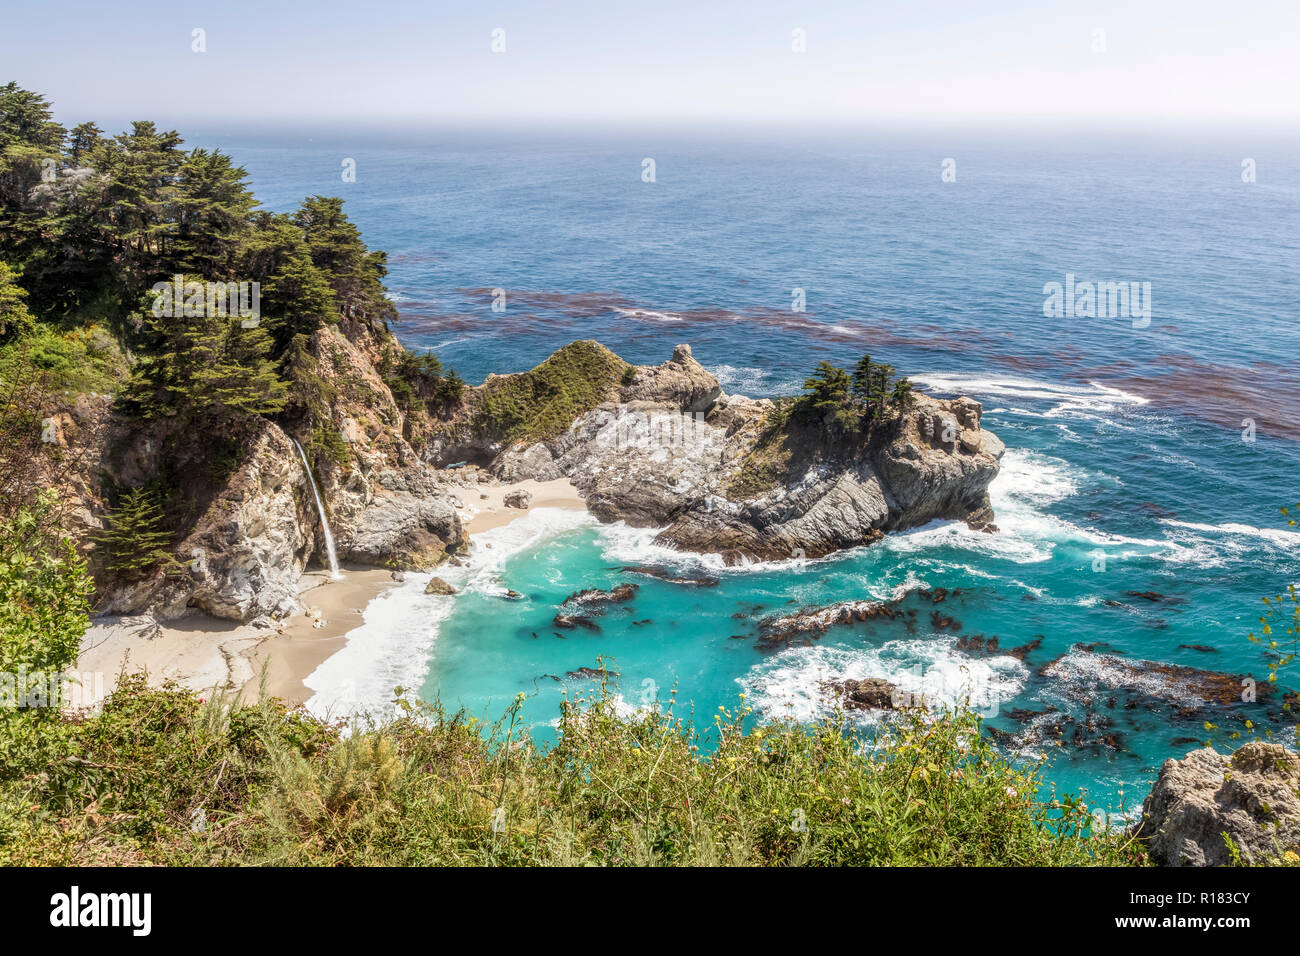 McWay Falls plunges onto a sandy beach in a beautiful rocky cove on the Big Sur Pacific Coast of California. - Stock Image